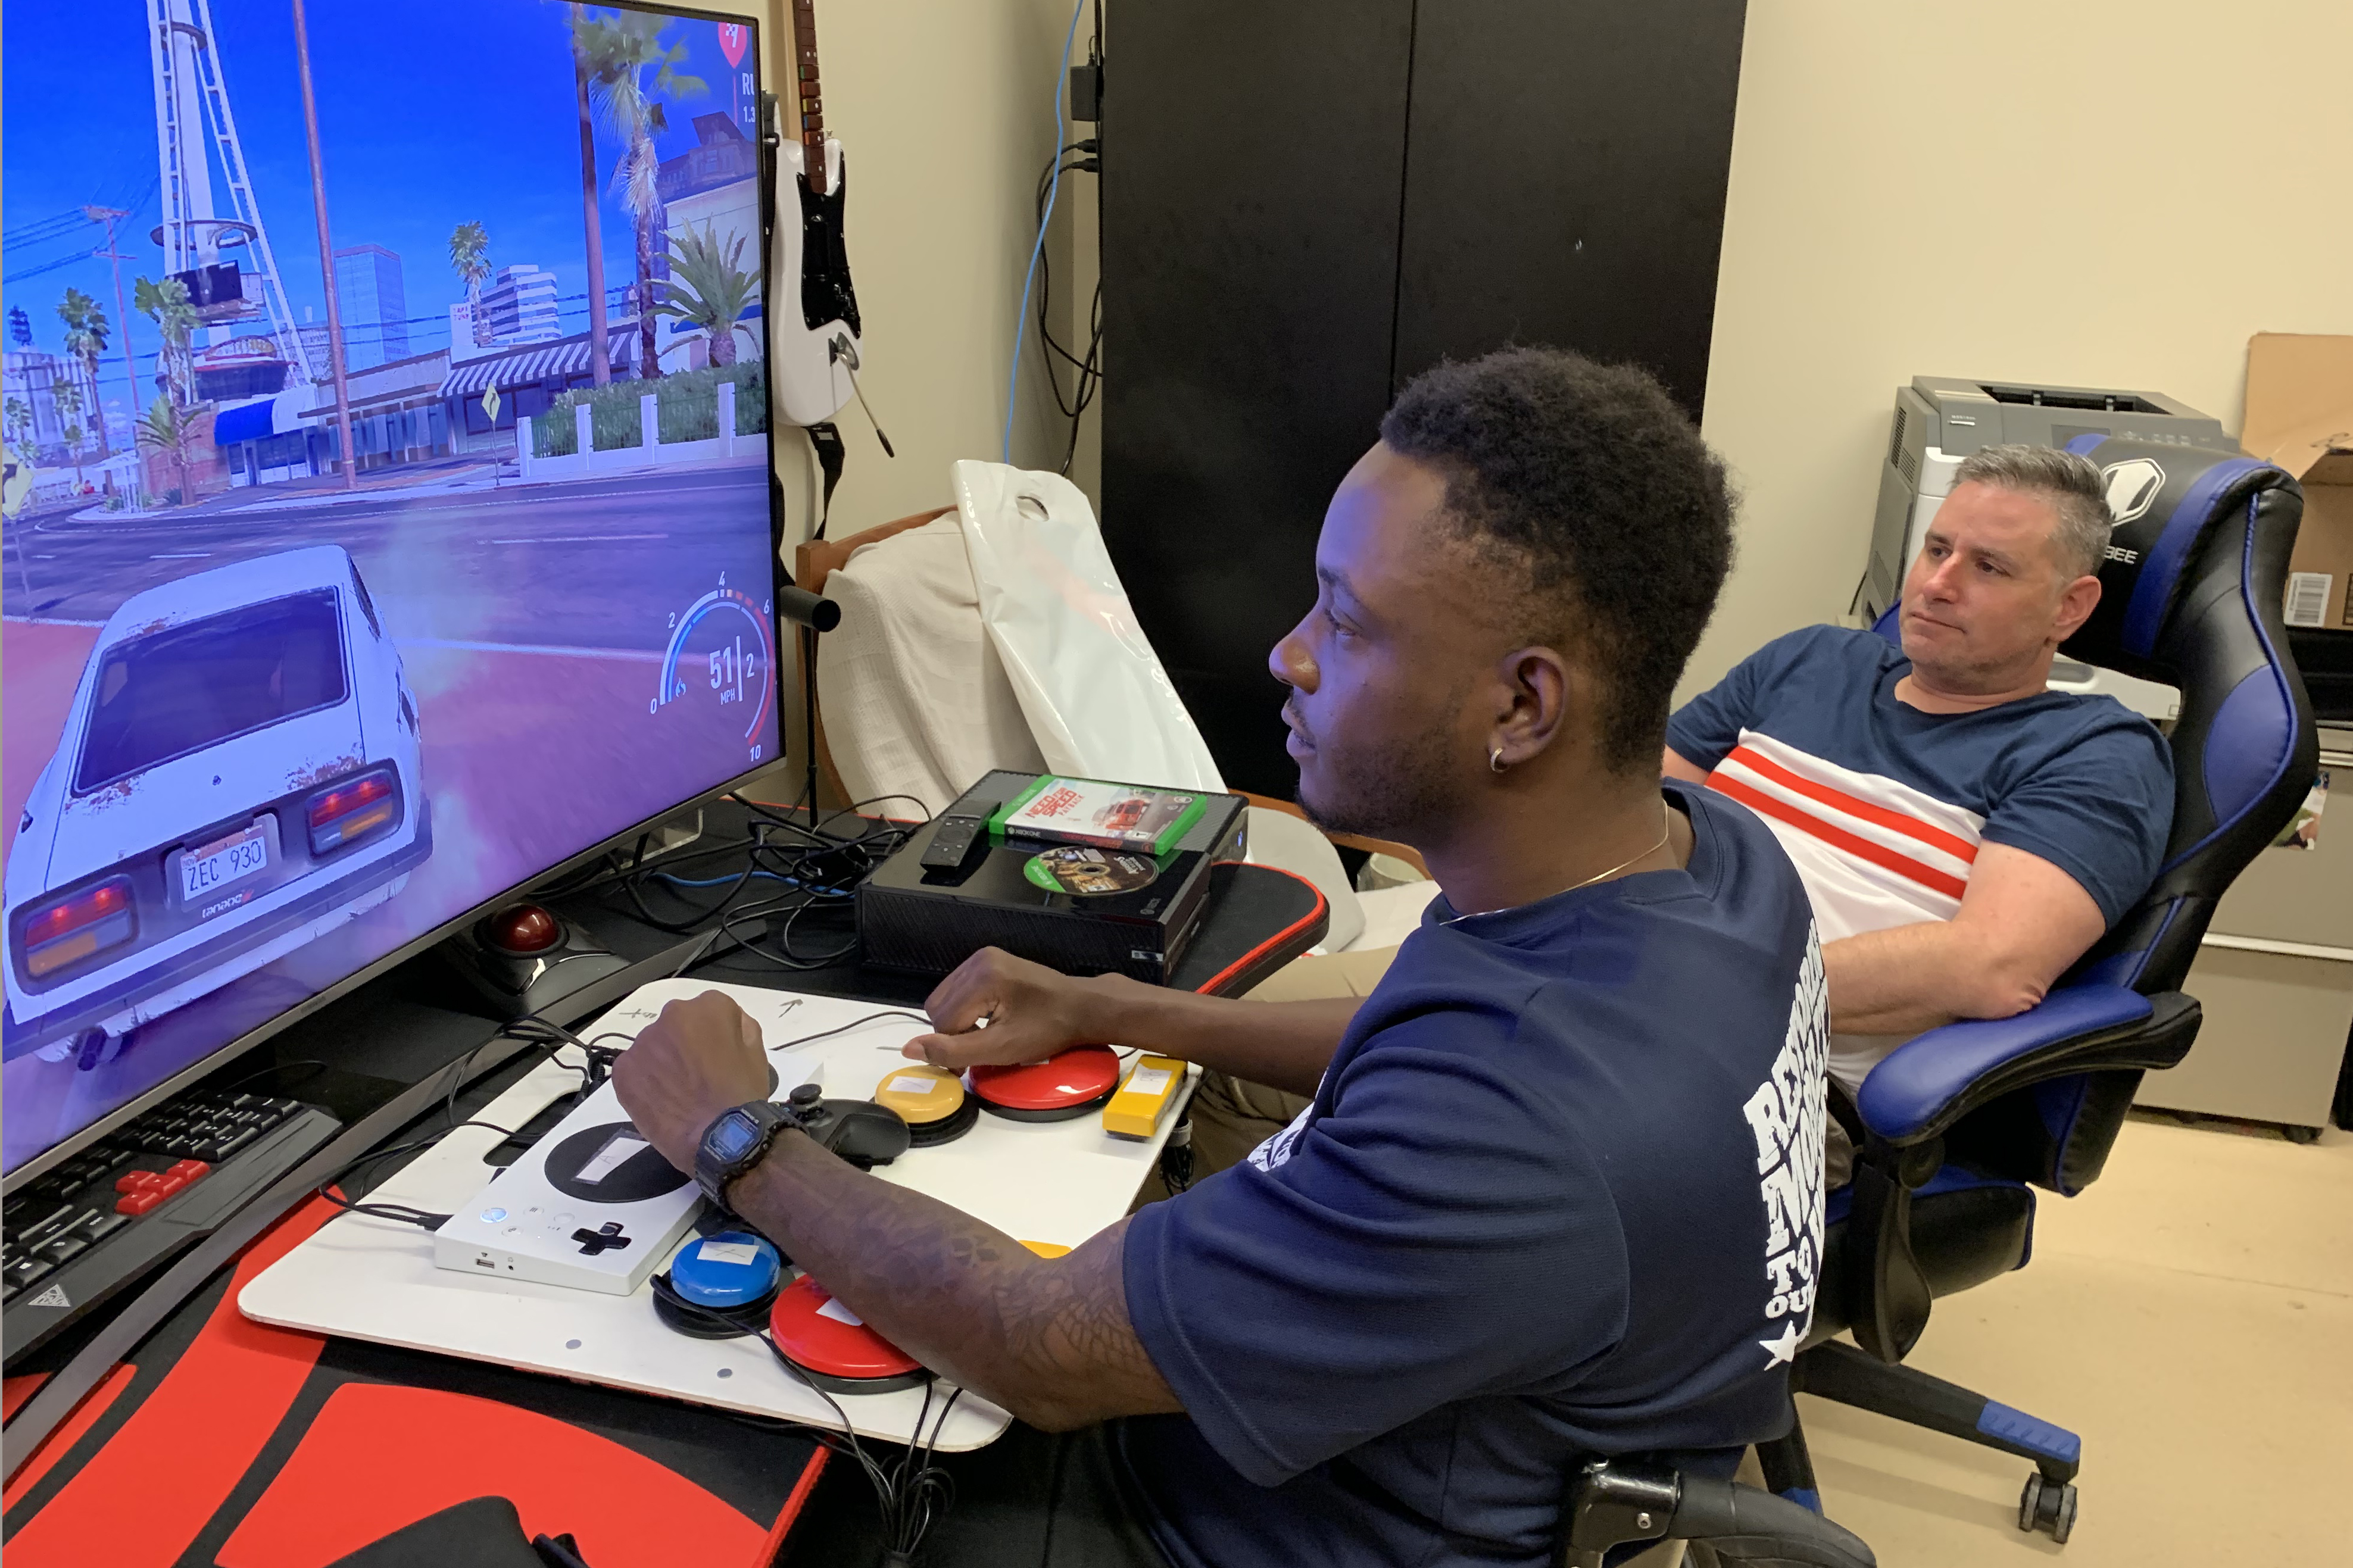 Caption: Army veteran Mike Monthervil (left) uses an adaptive controller to play video games as his VA recreational therapist Jamie Kaplan watches., Credit: Stephanie Colombini/American Homefront